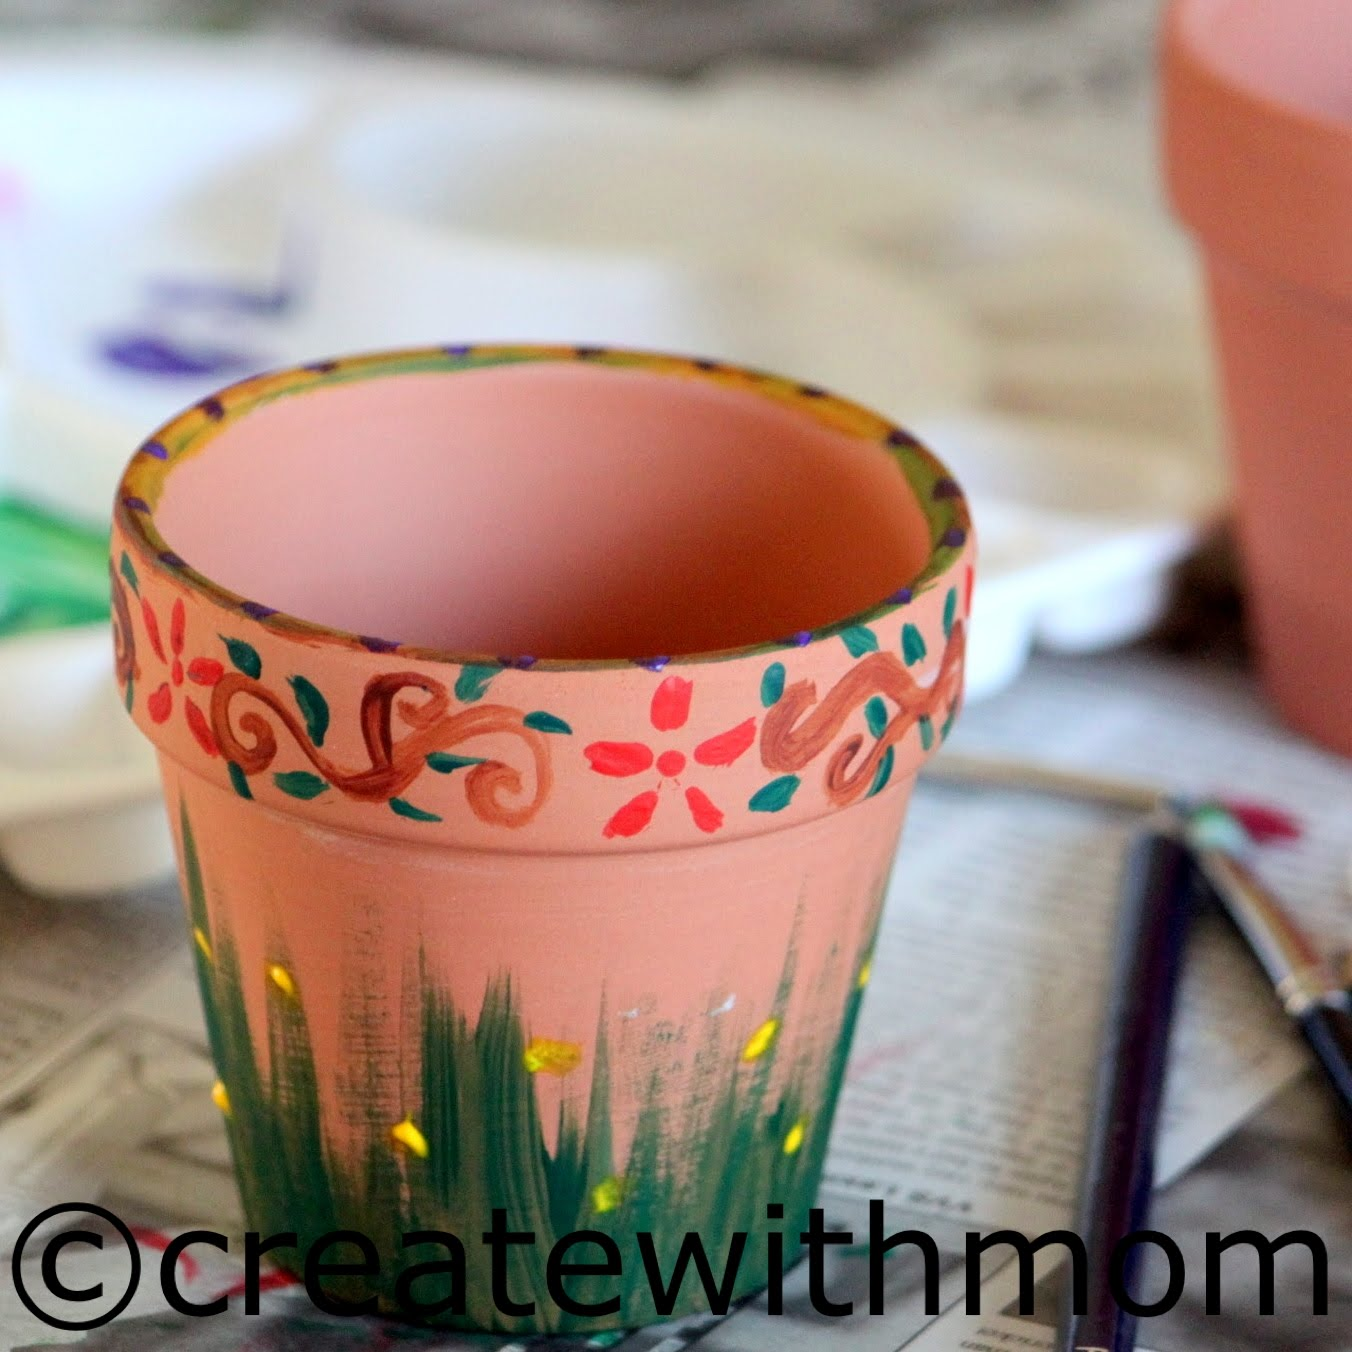 Acrylic Painting On Clay Pots